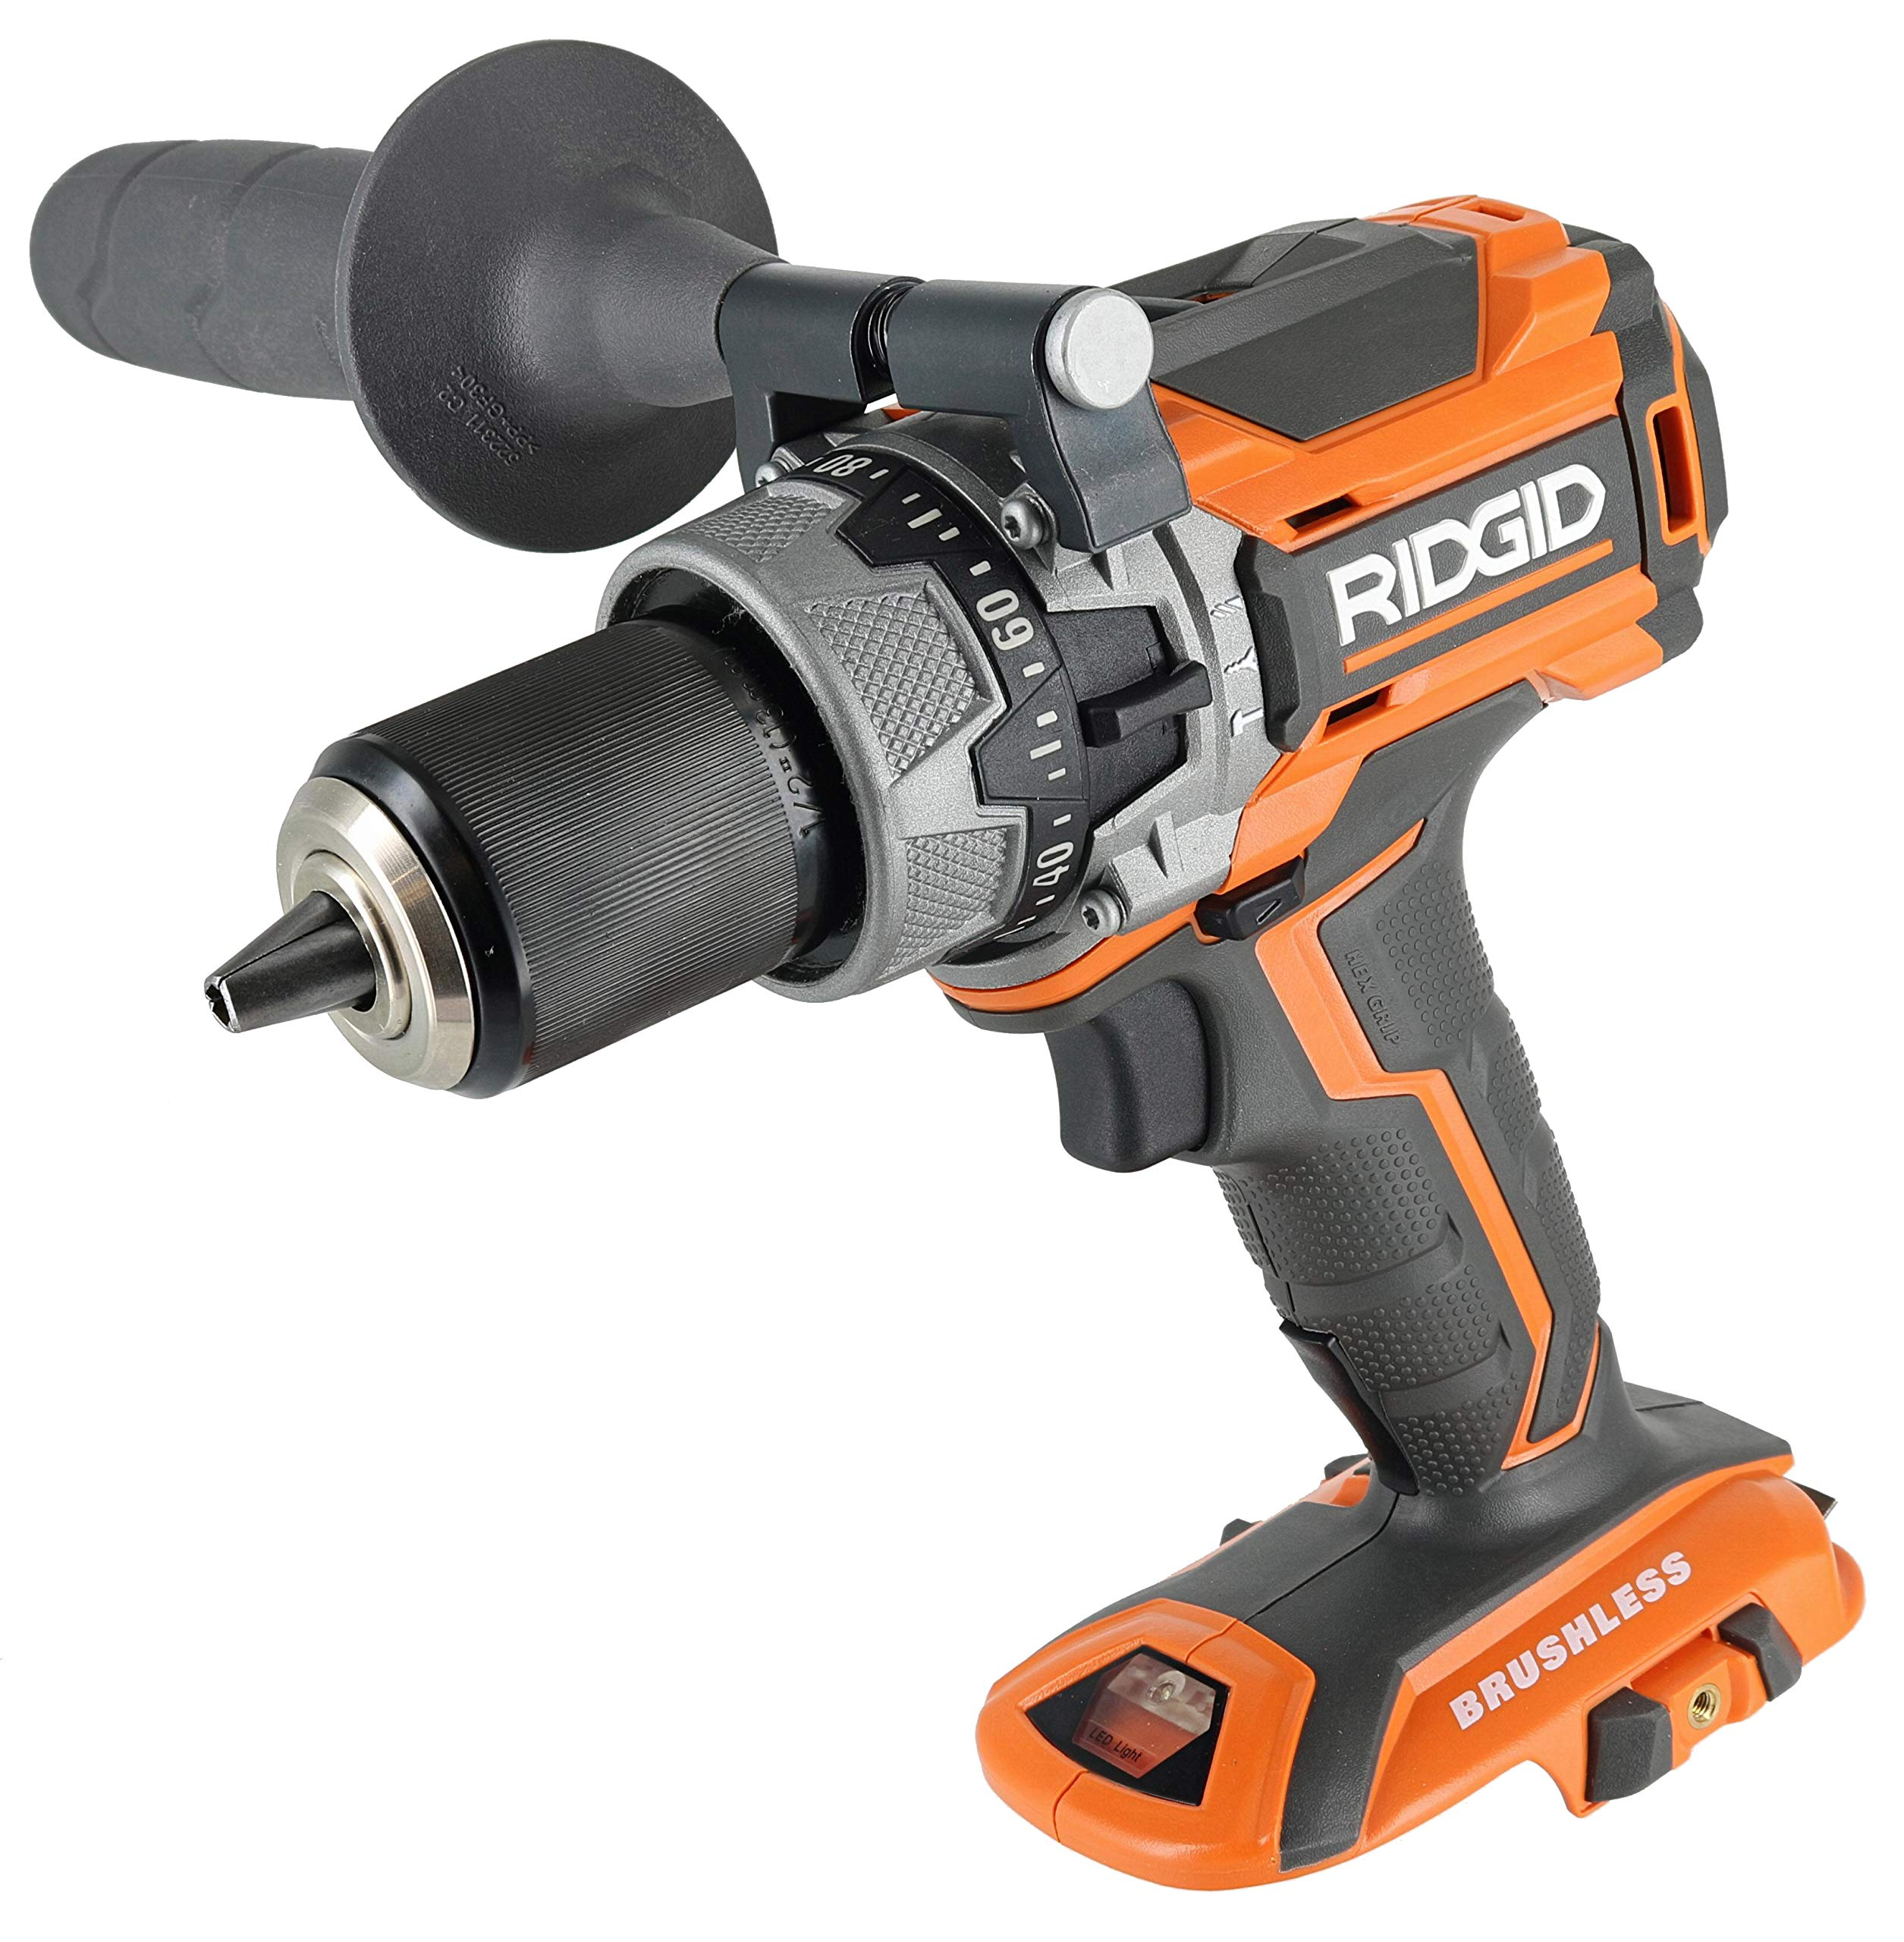 Ridgid R86116 18V Lithium Ion Cordless Brushless Compact Hammer Drill w/ 100-Setting Micro Clutch and LED Lighting (Battery Not Included / Power Tool Only) by Ridgid